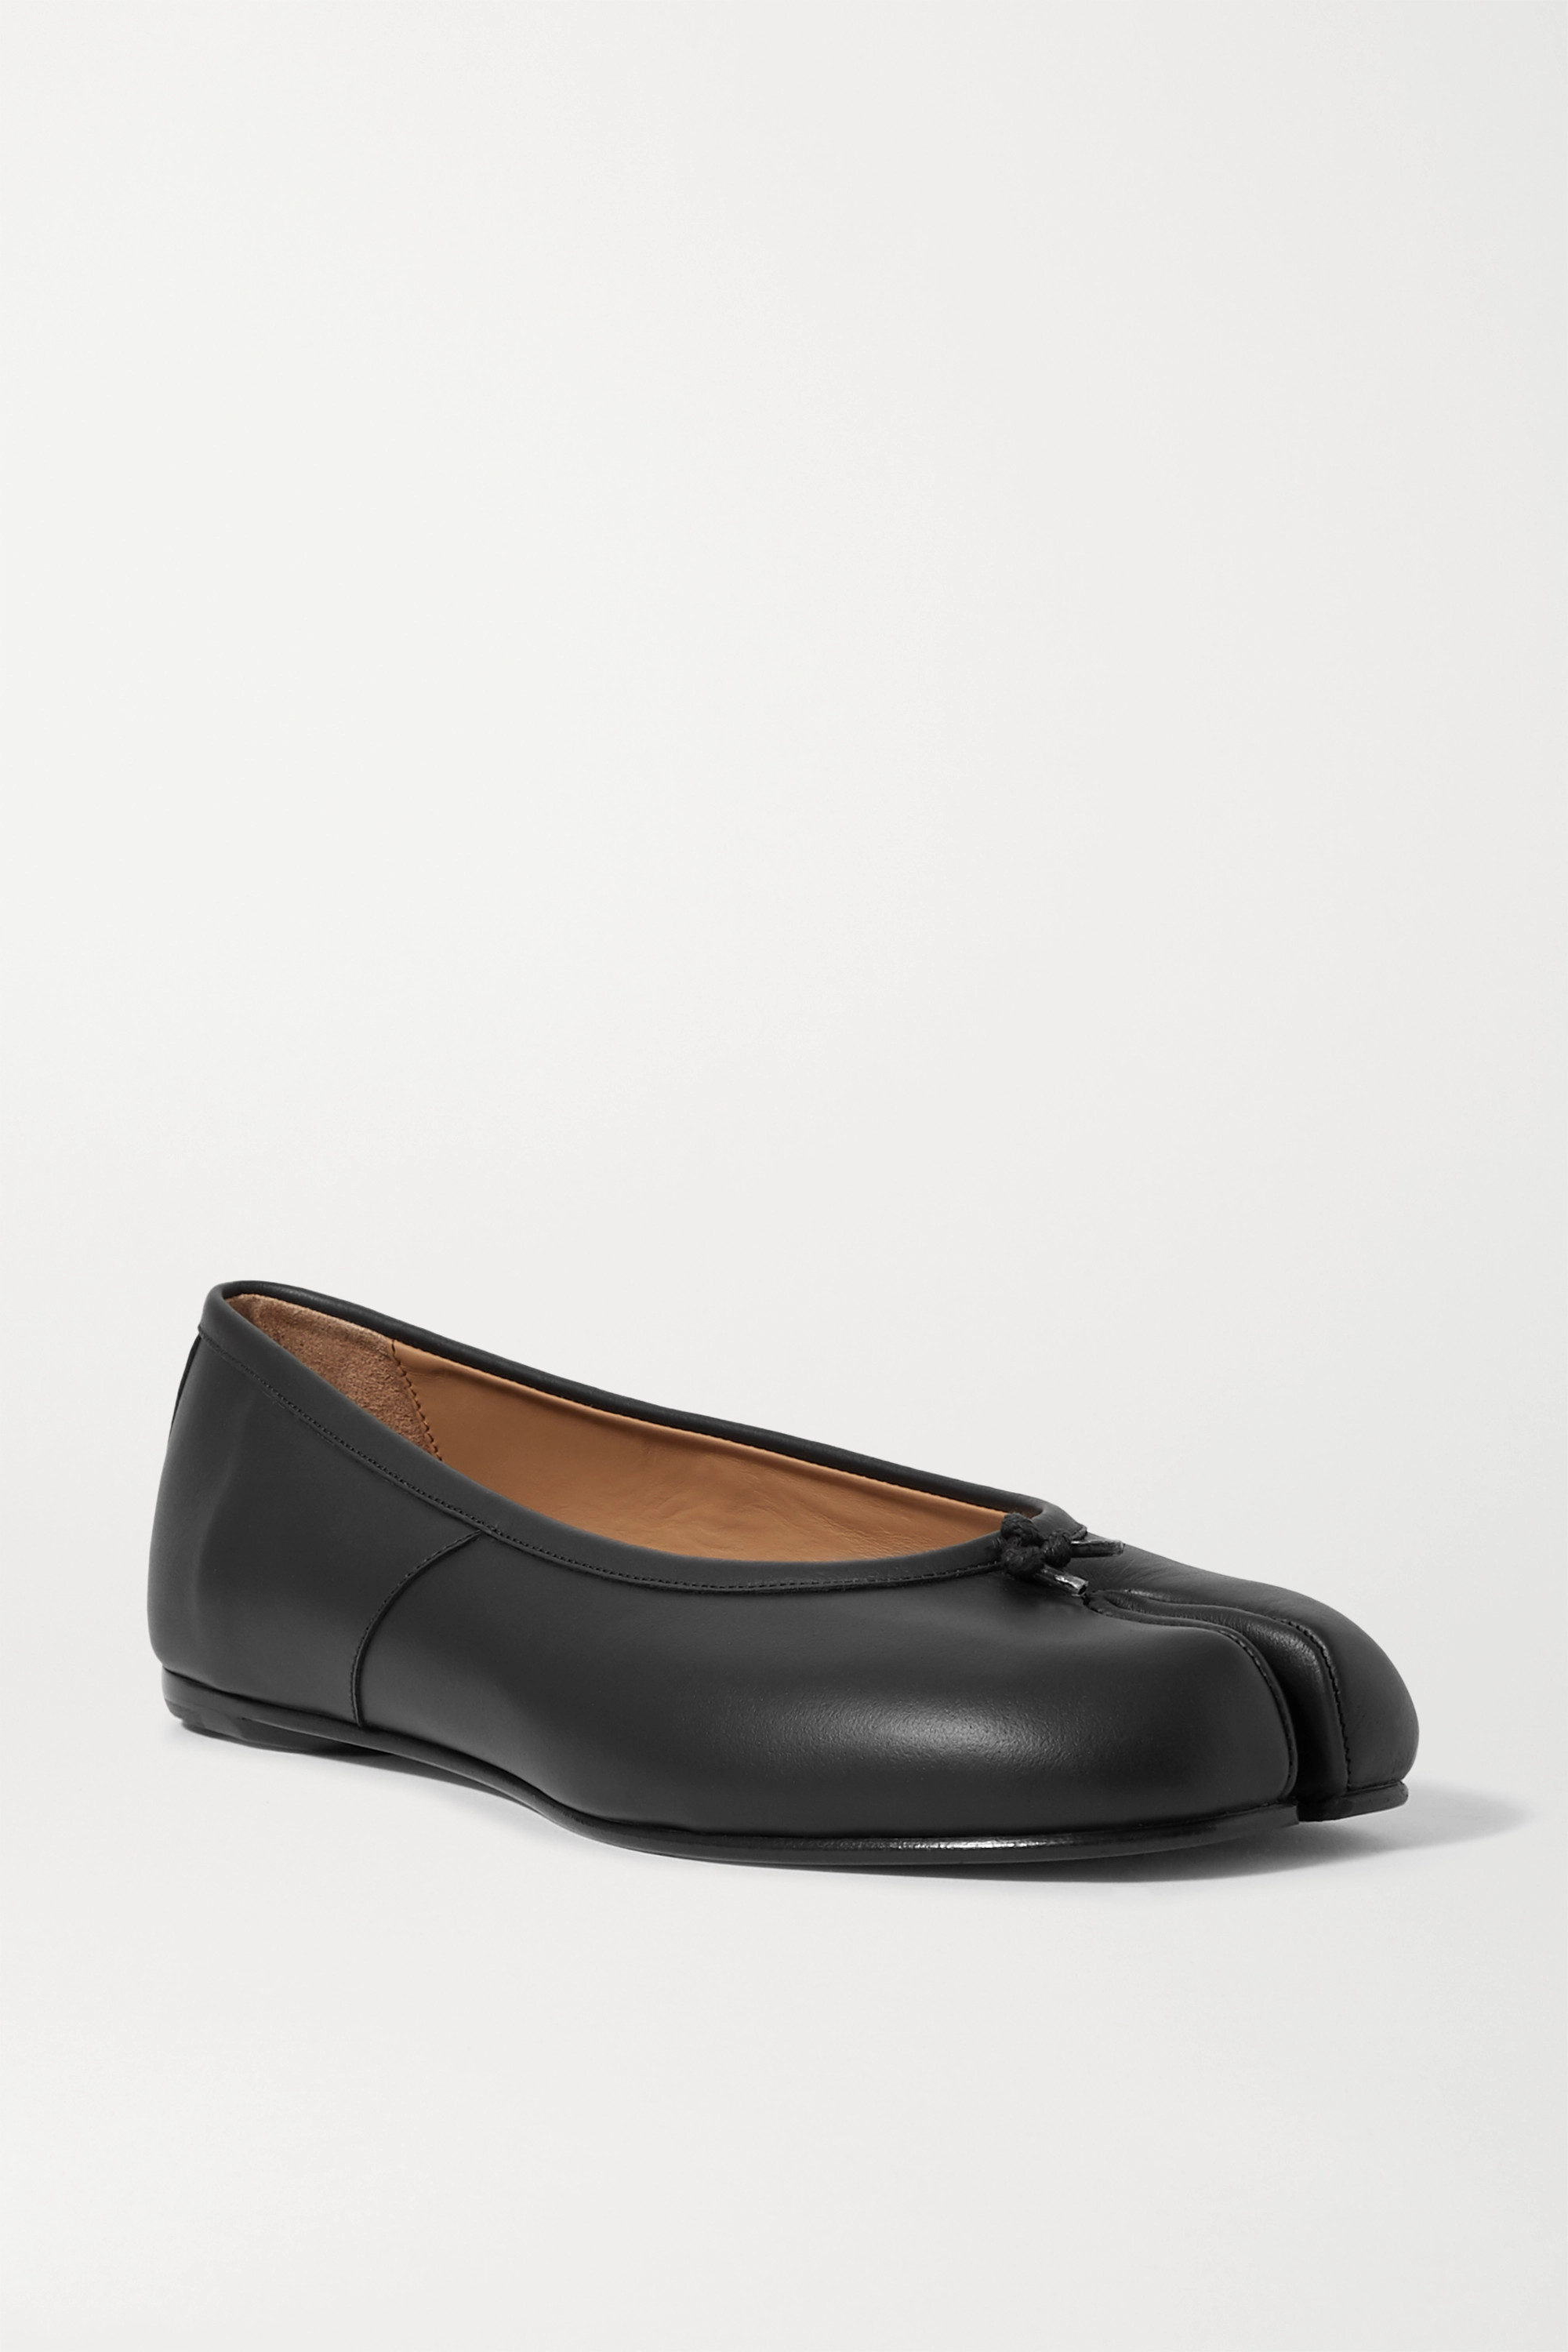 MAISON MARGIELA Tabi split-toe leather ballet flats